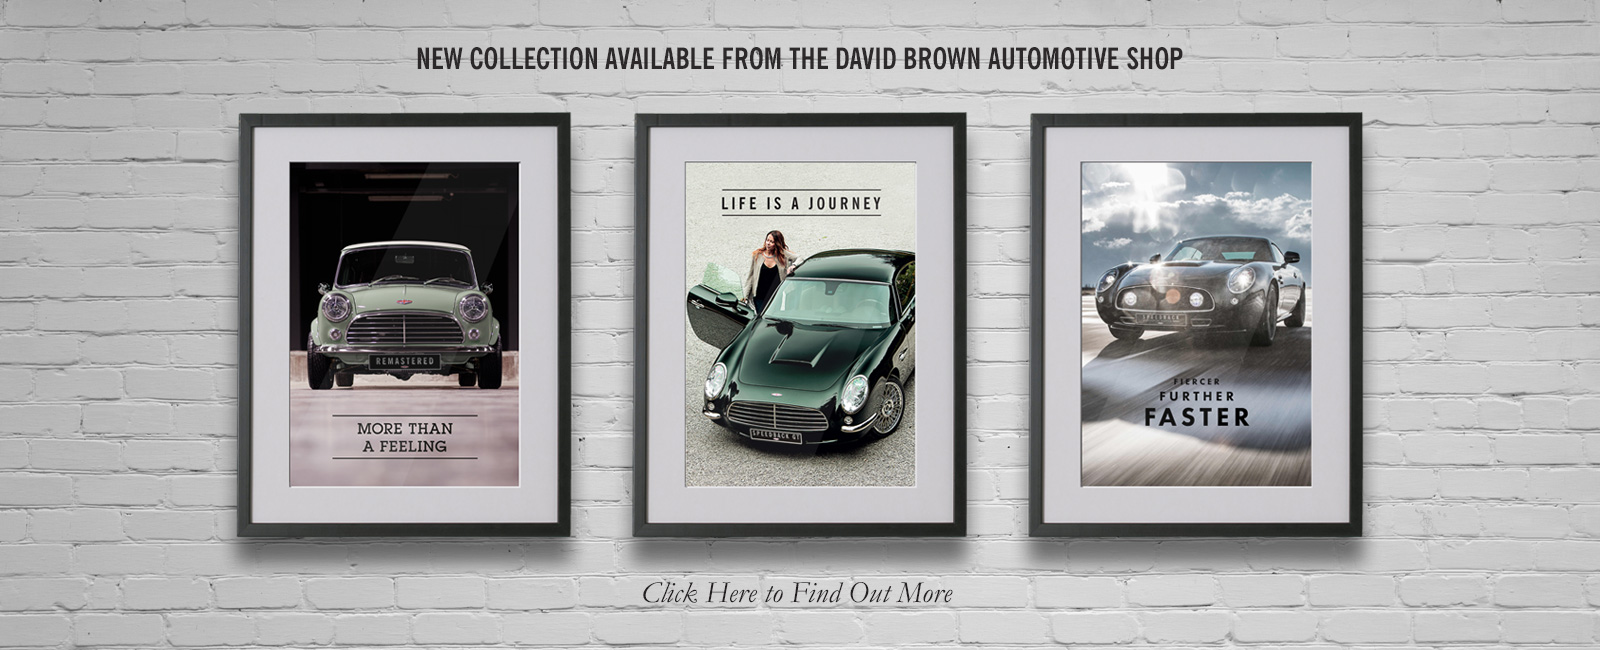 Home – David Brown Automotive